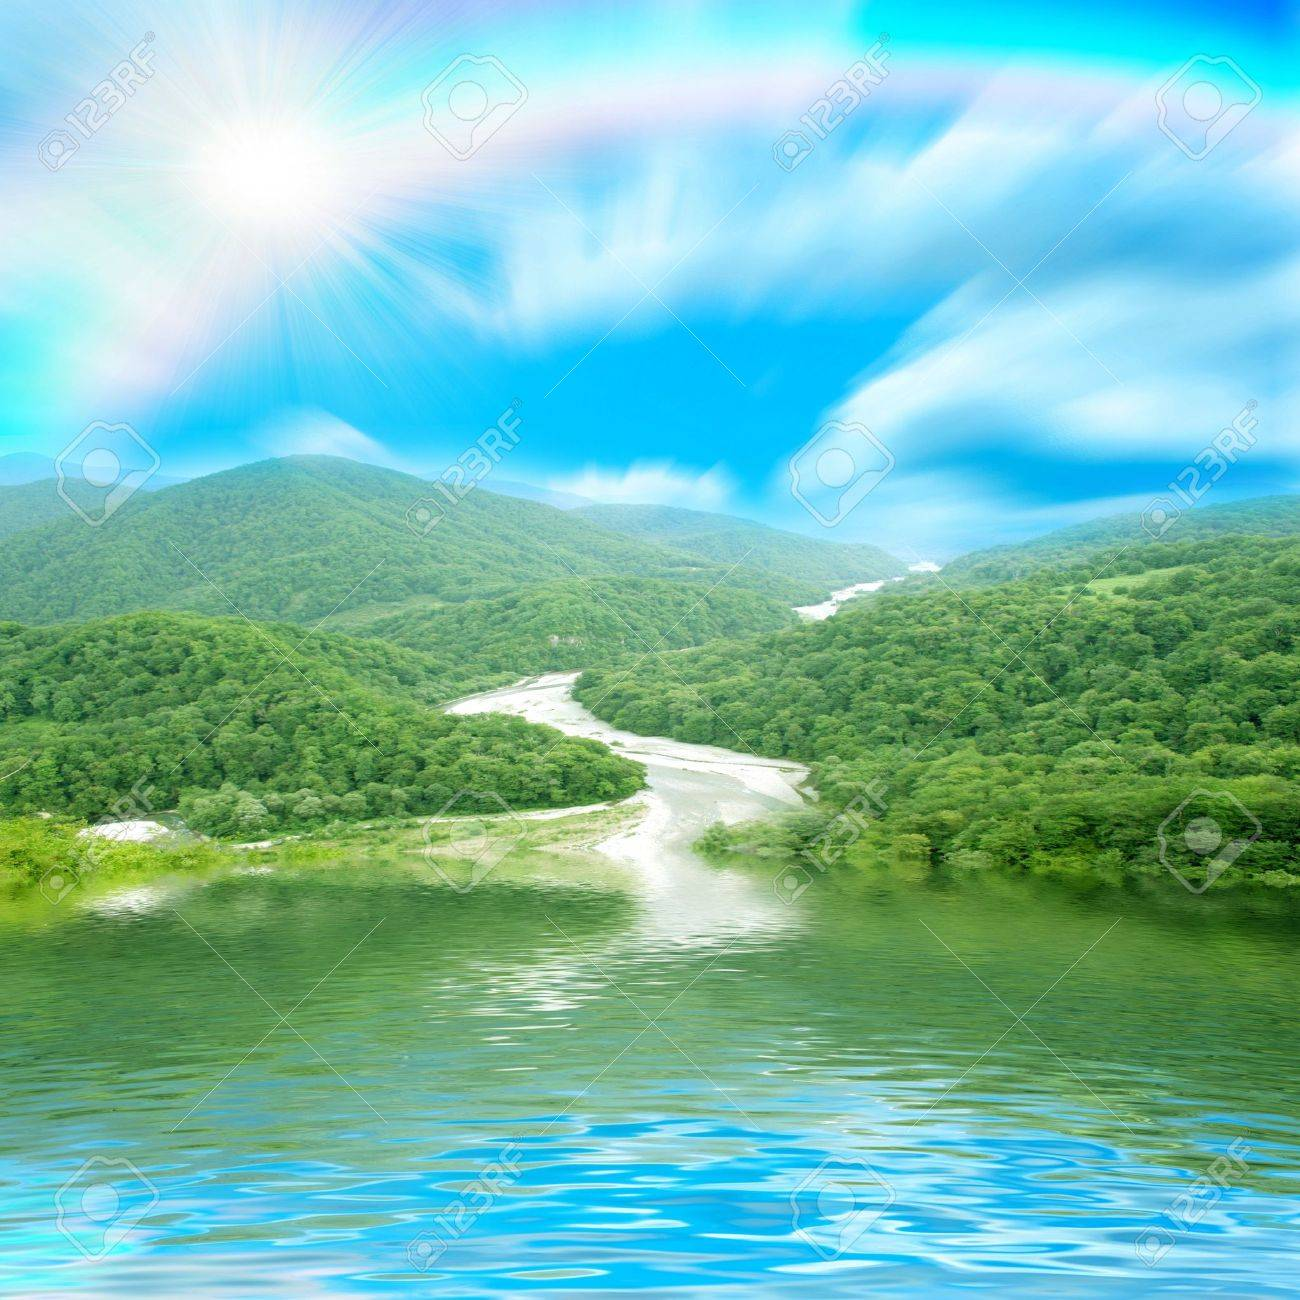 reflections mountain landscape in surfaces lake Stock Photo - 7549896